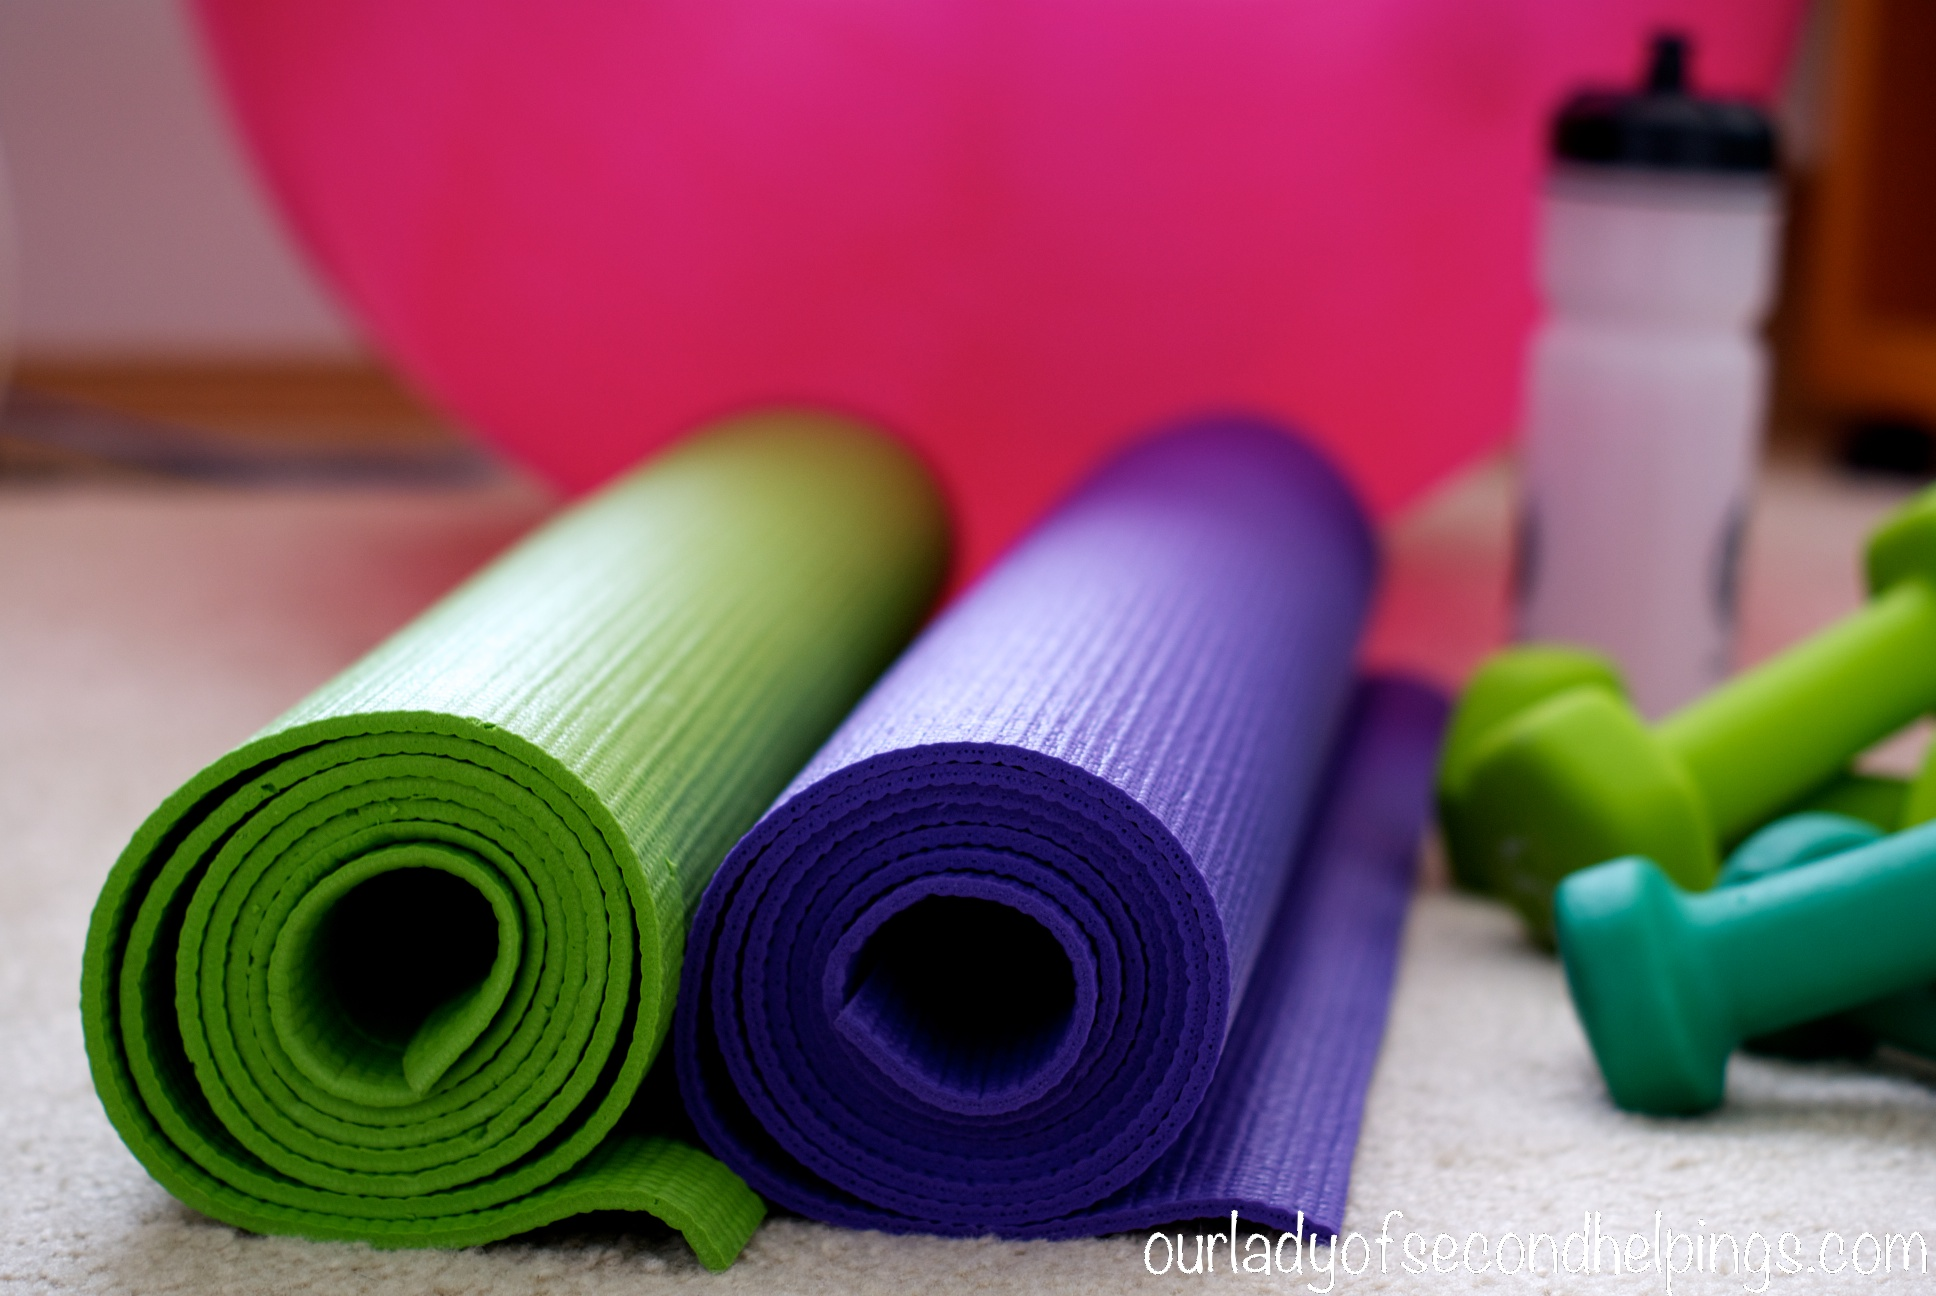 Yoga Mats, Hand Weights and Pilates Ball